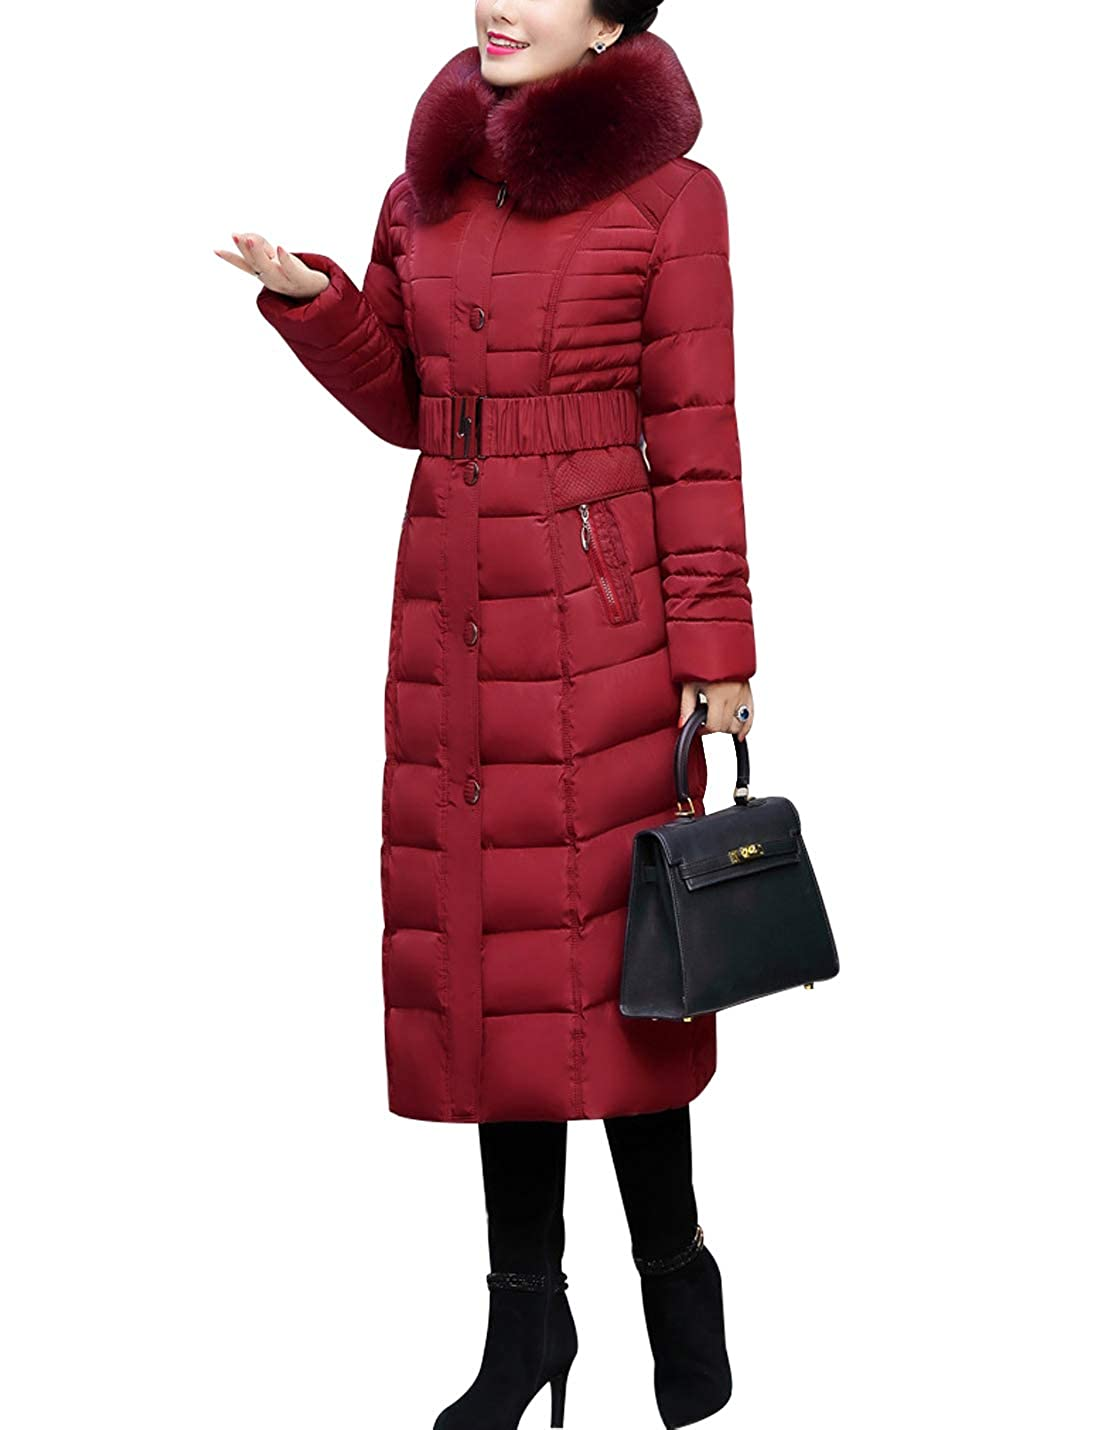 Yeokou Women's Slim Fur Hooded Long Quilted Puffer Winter Coat Parka with Belt